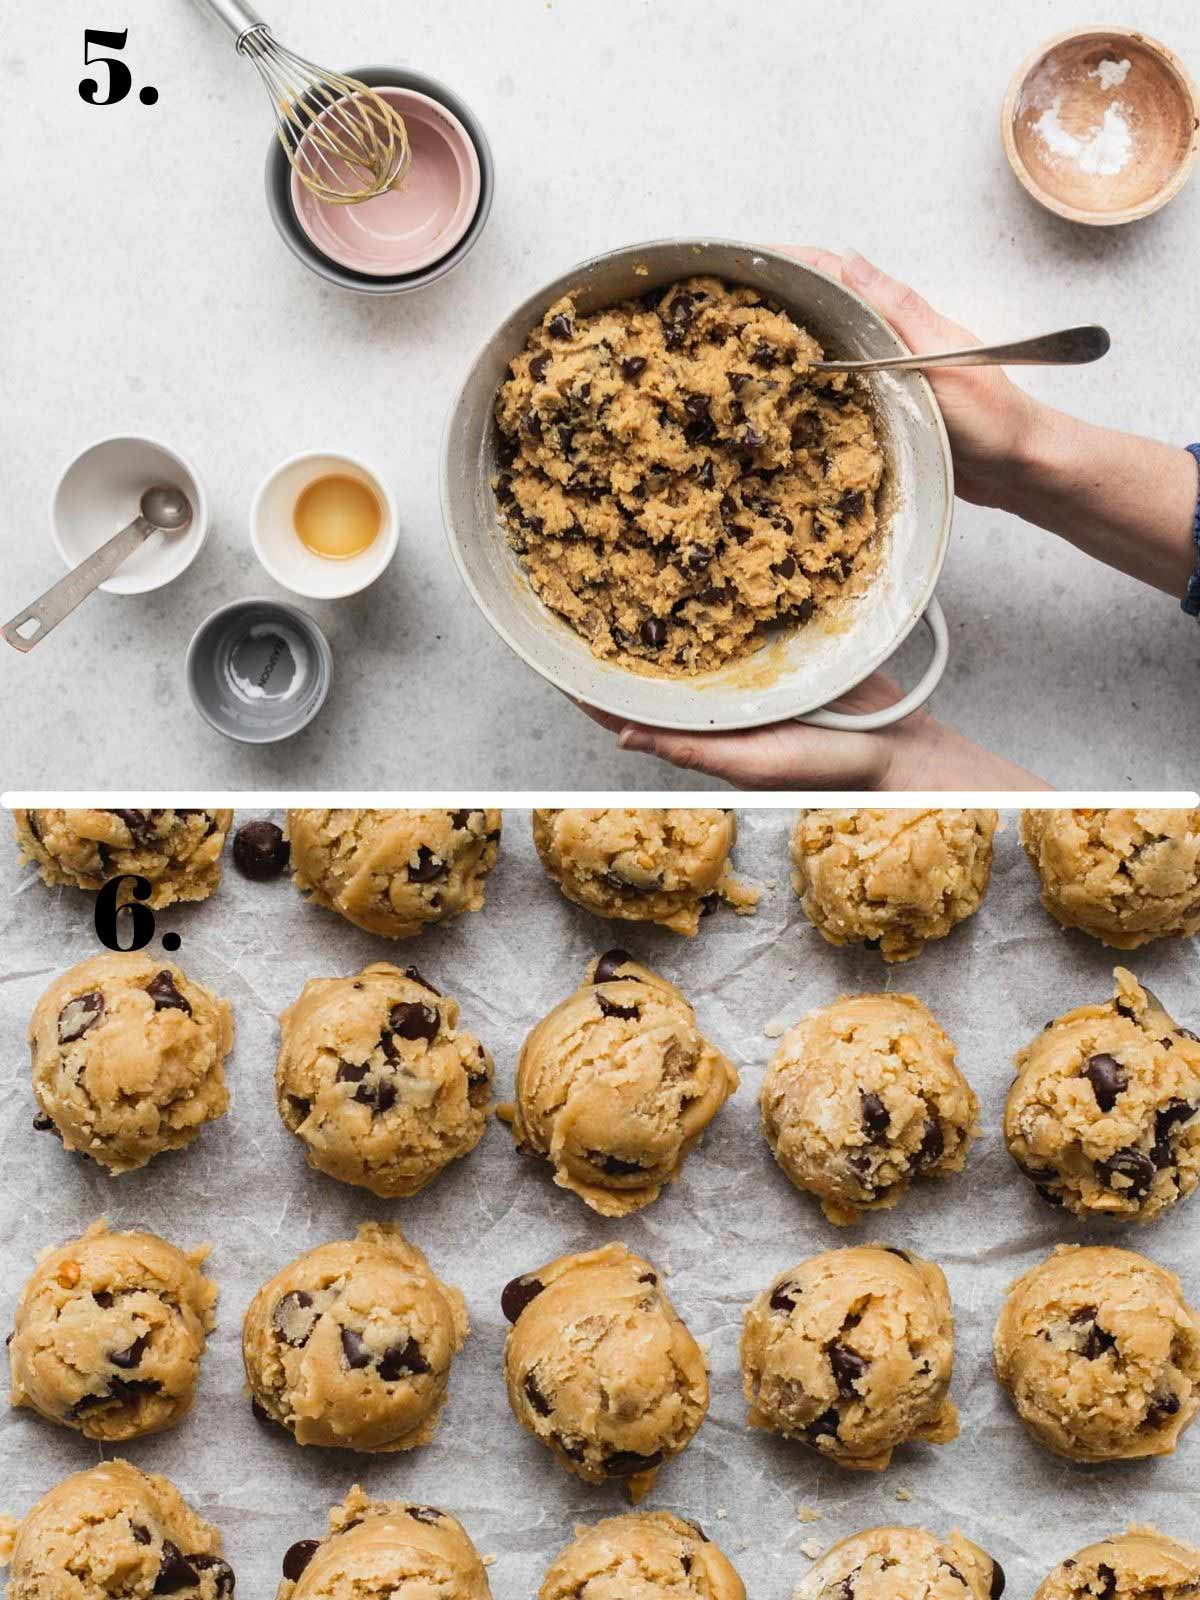 Two images with cookie dough in a bowl and rolled into balls.